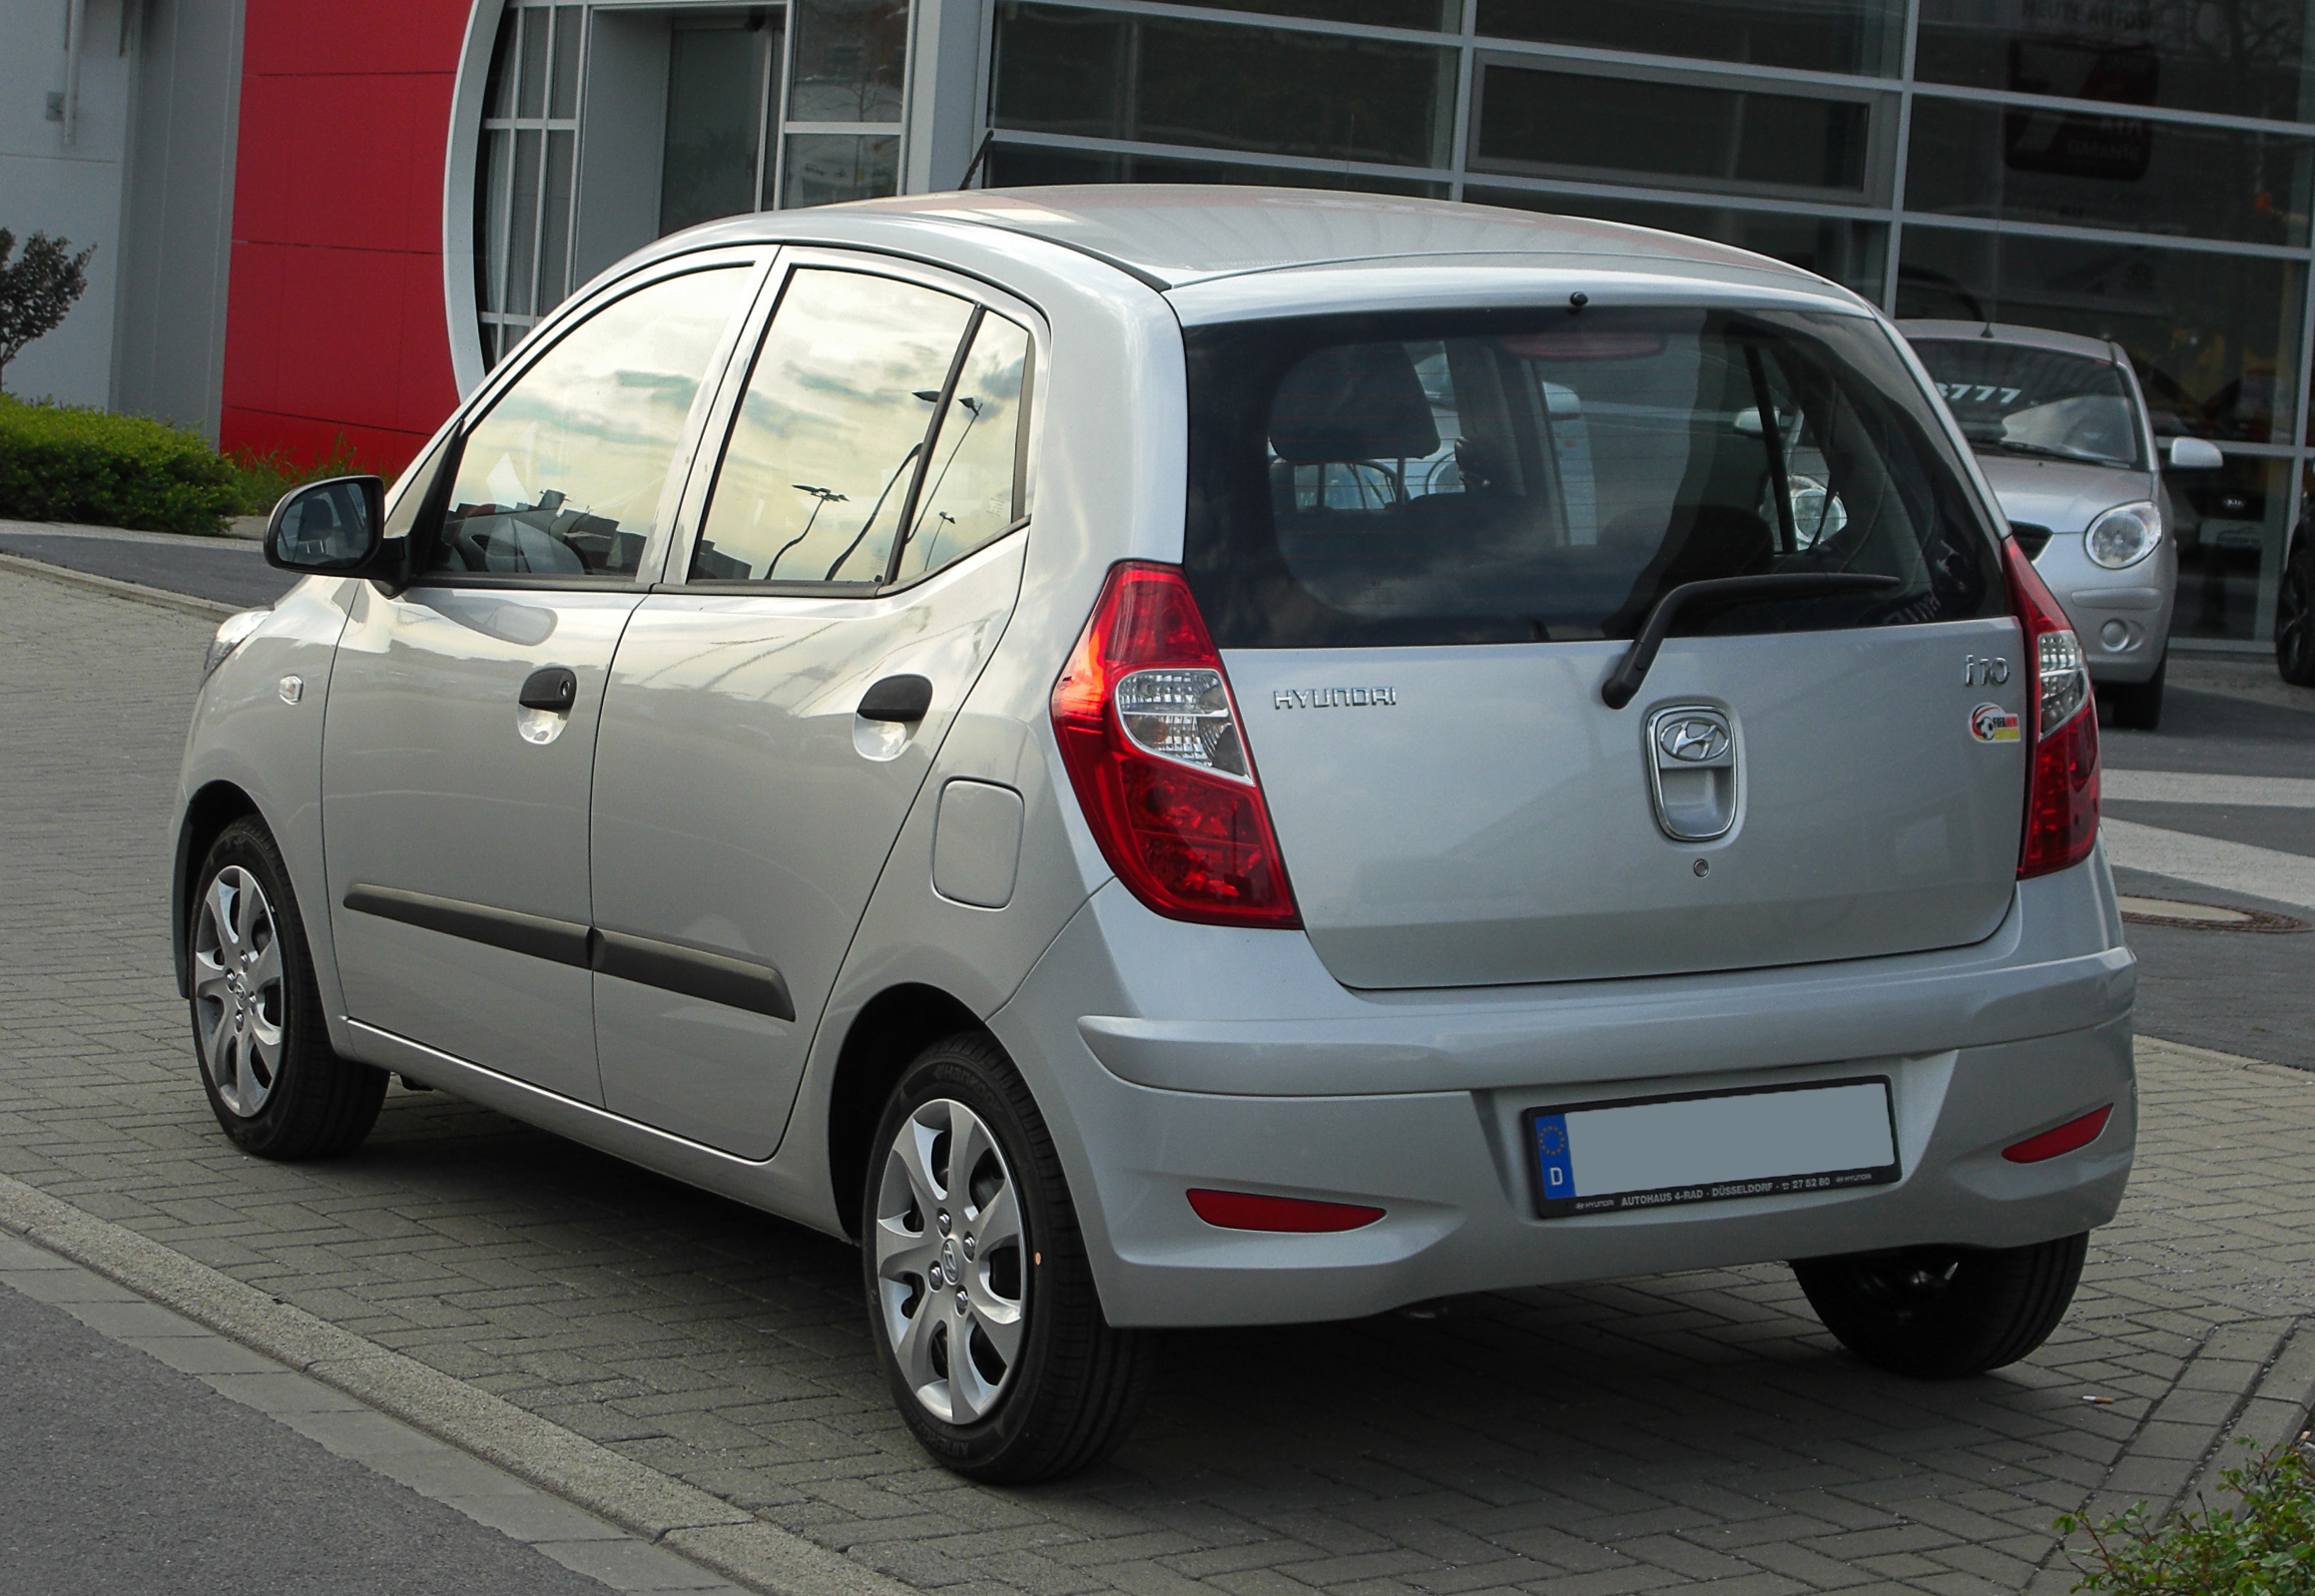 2009 hyundai i10 pictures information and specs auto. Black Bedroom Furniture Sets. Home Design Ideas